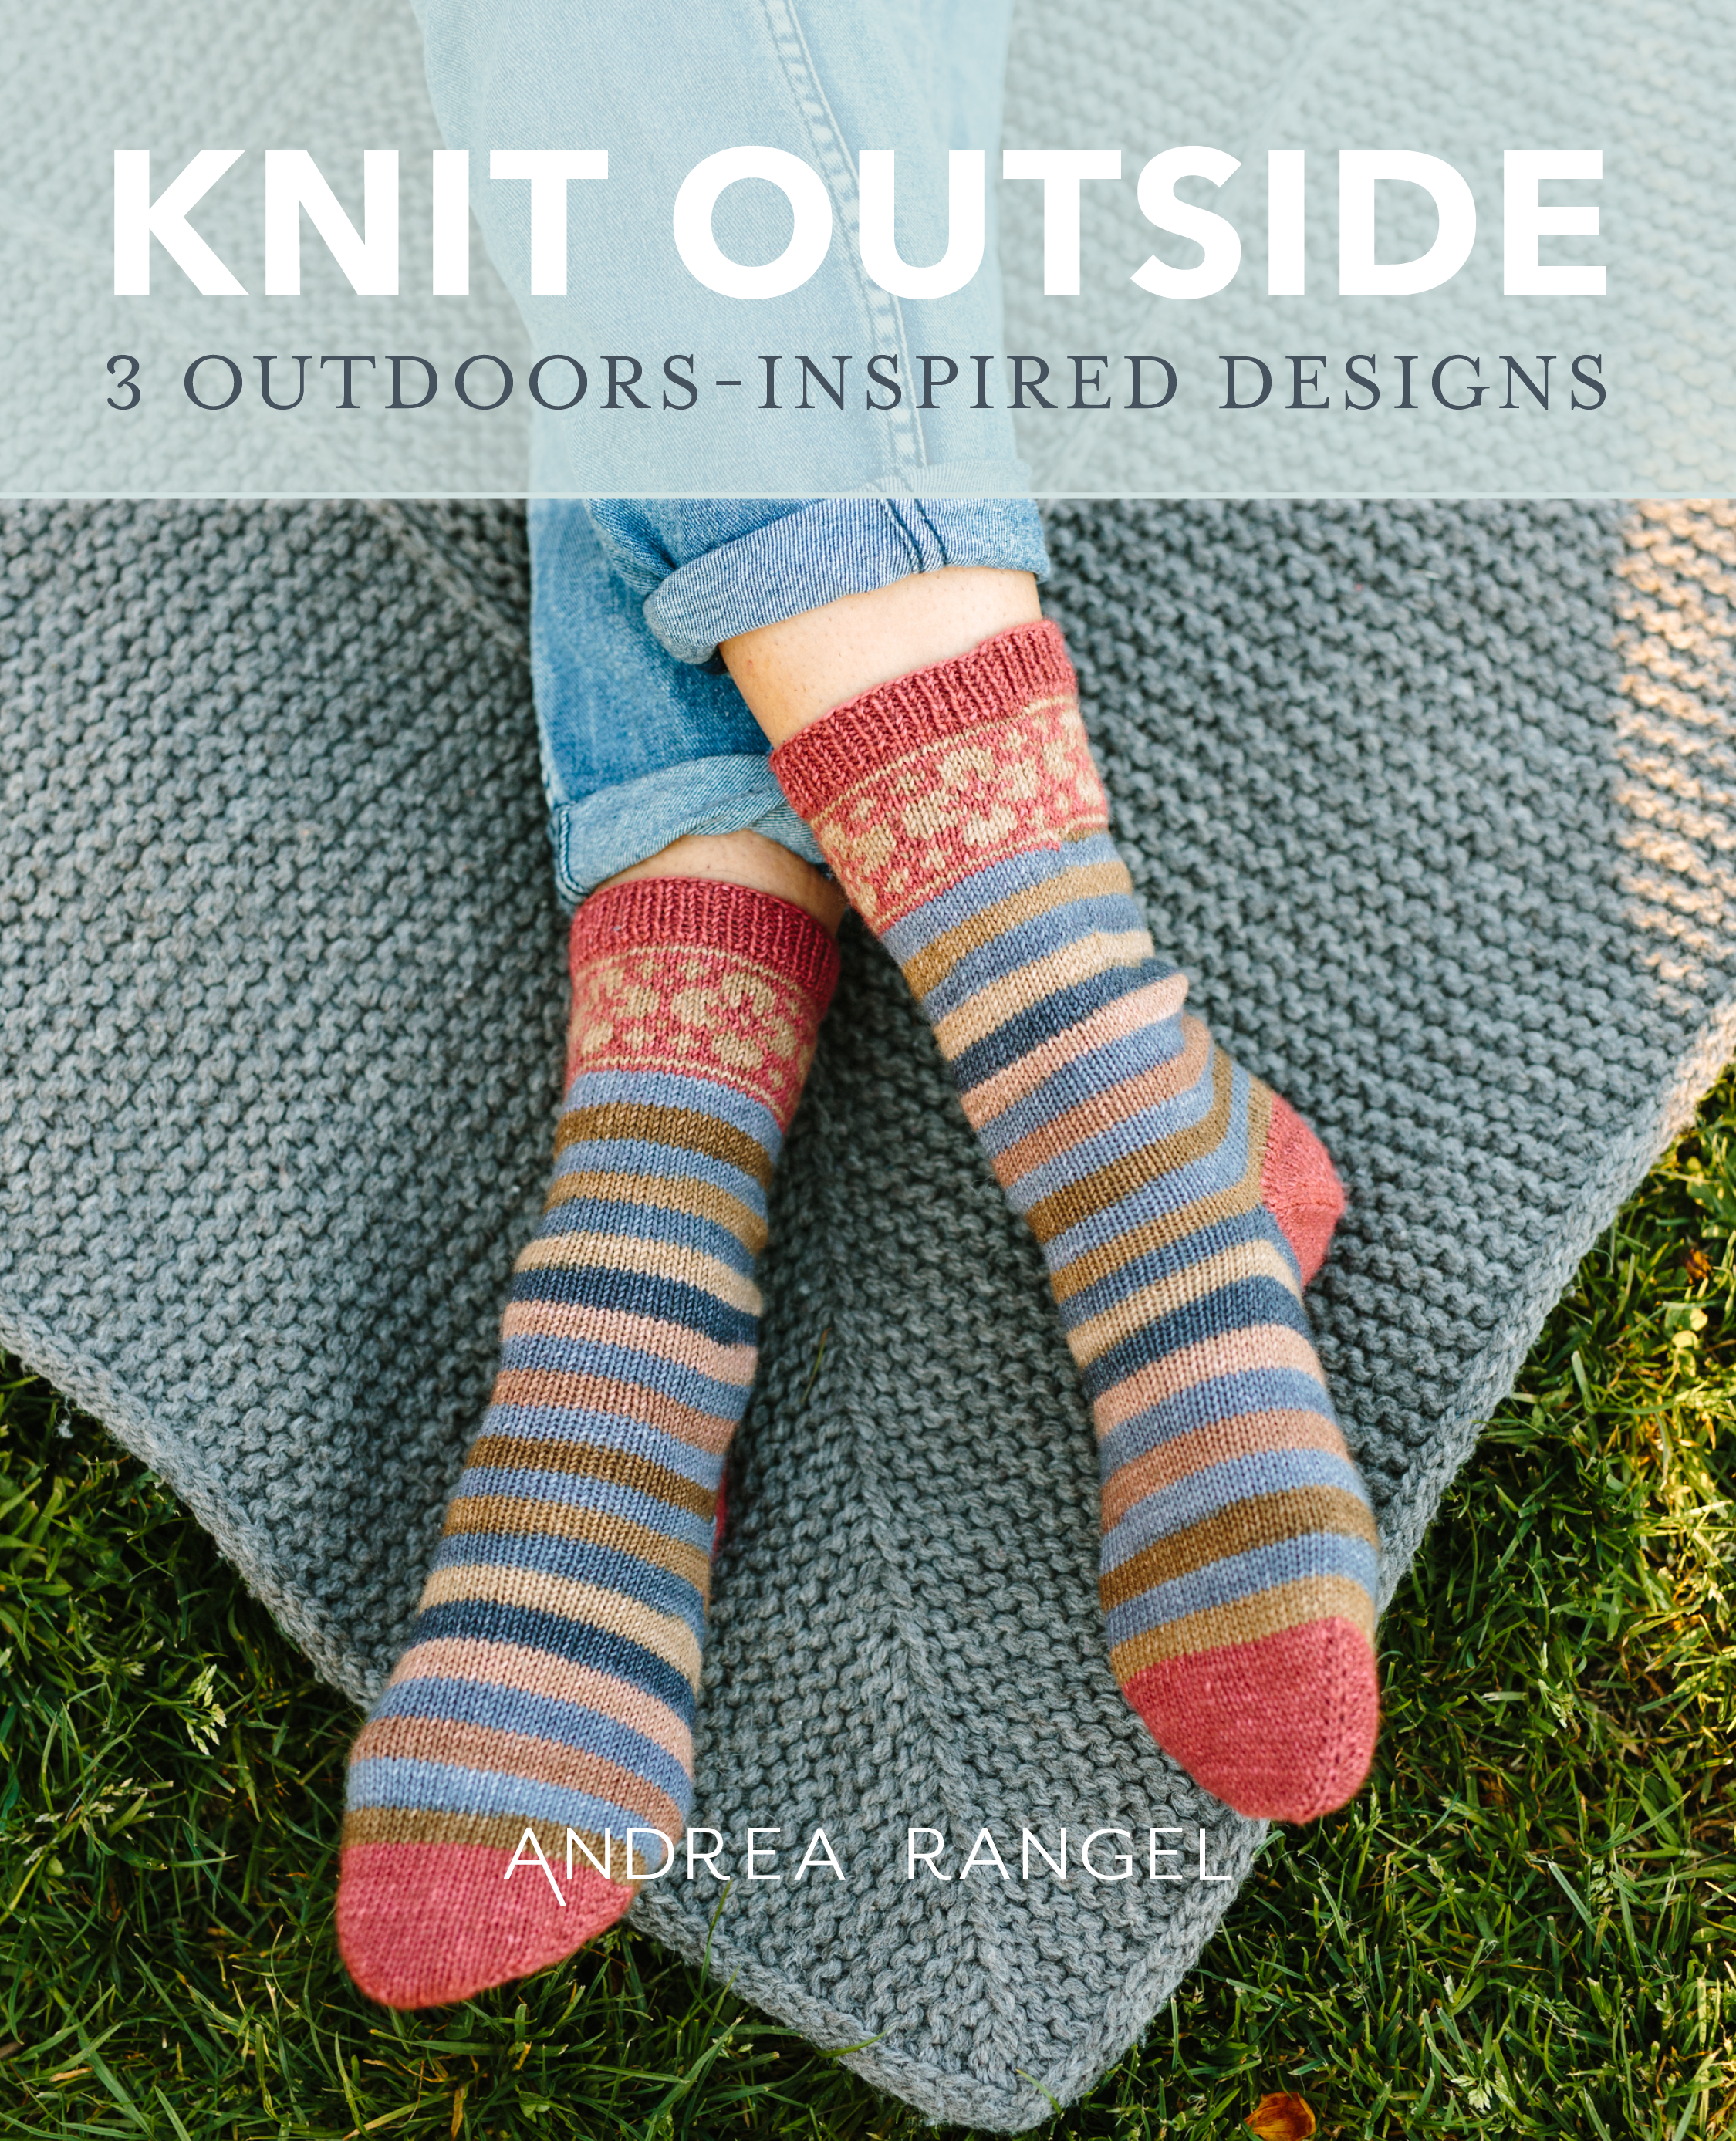 Knit-Outside_cover-image.png